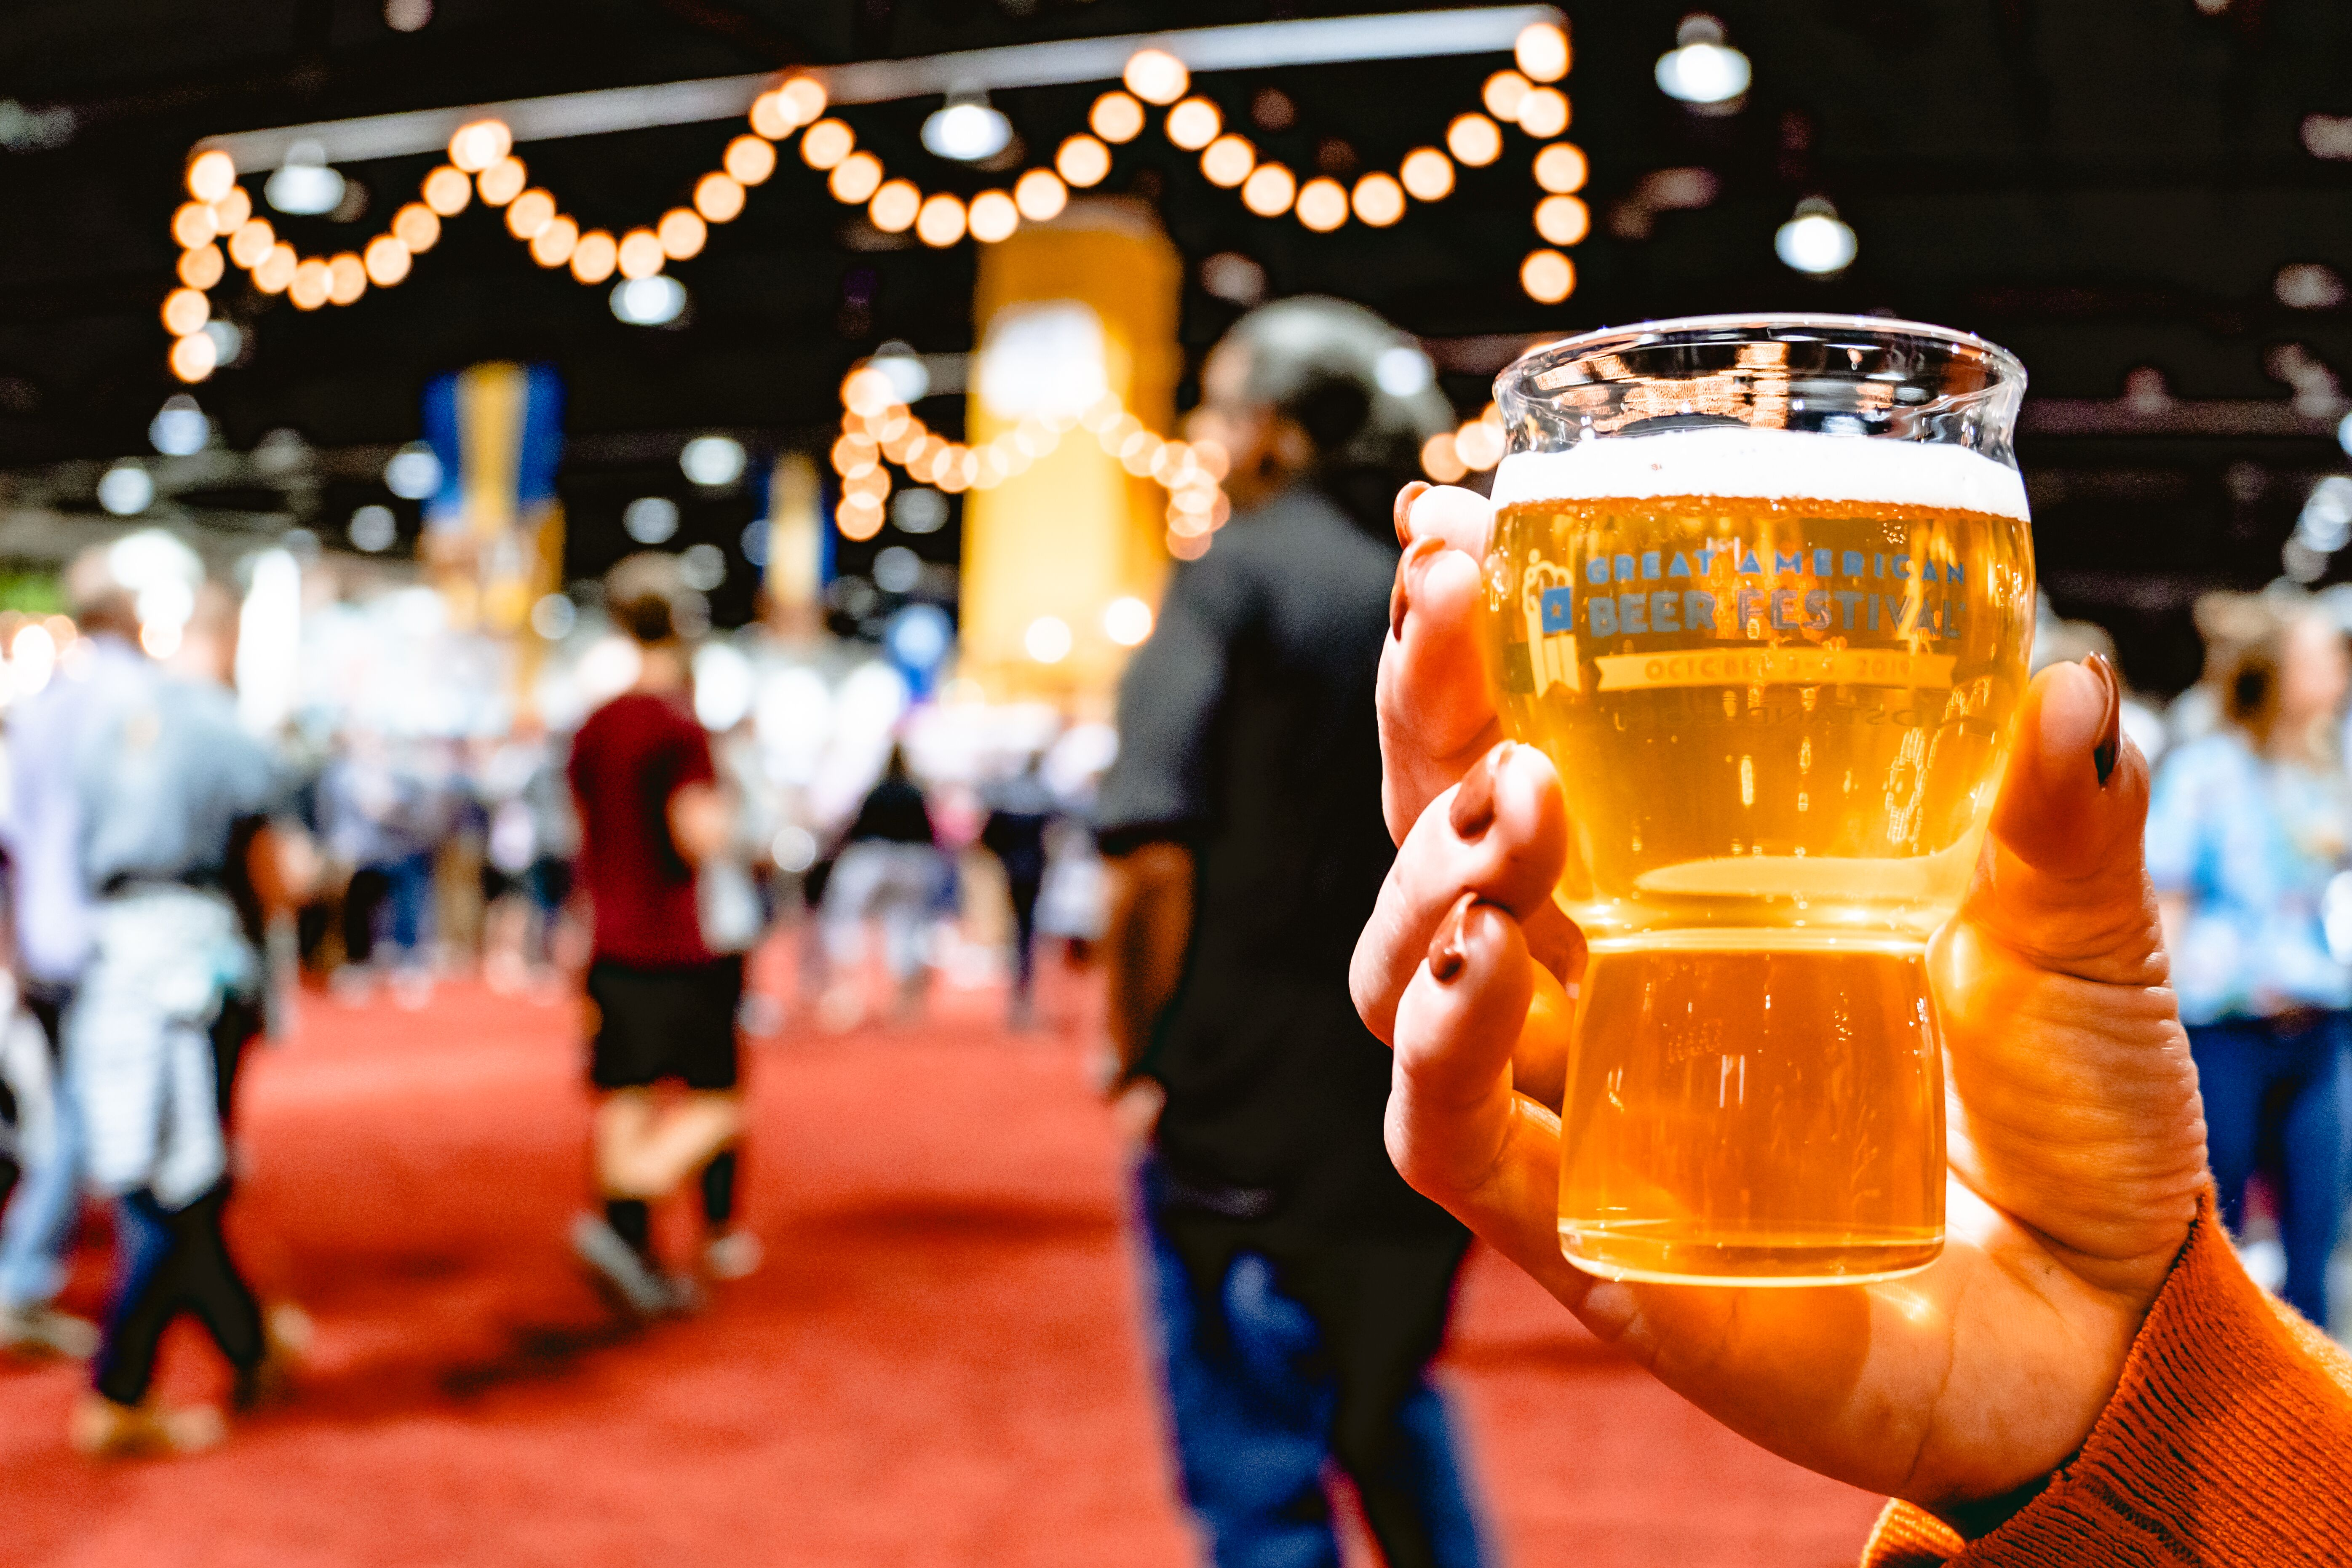 A close-up photo of a hand holding a souvenir tasting glass that has been filled with golden beer at the Great American Beer Festival.